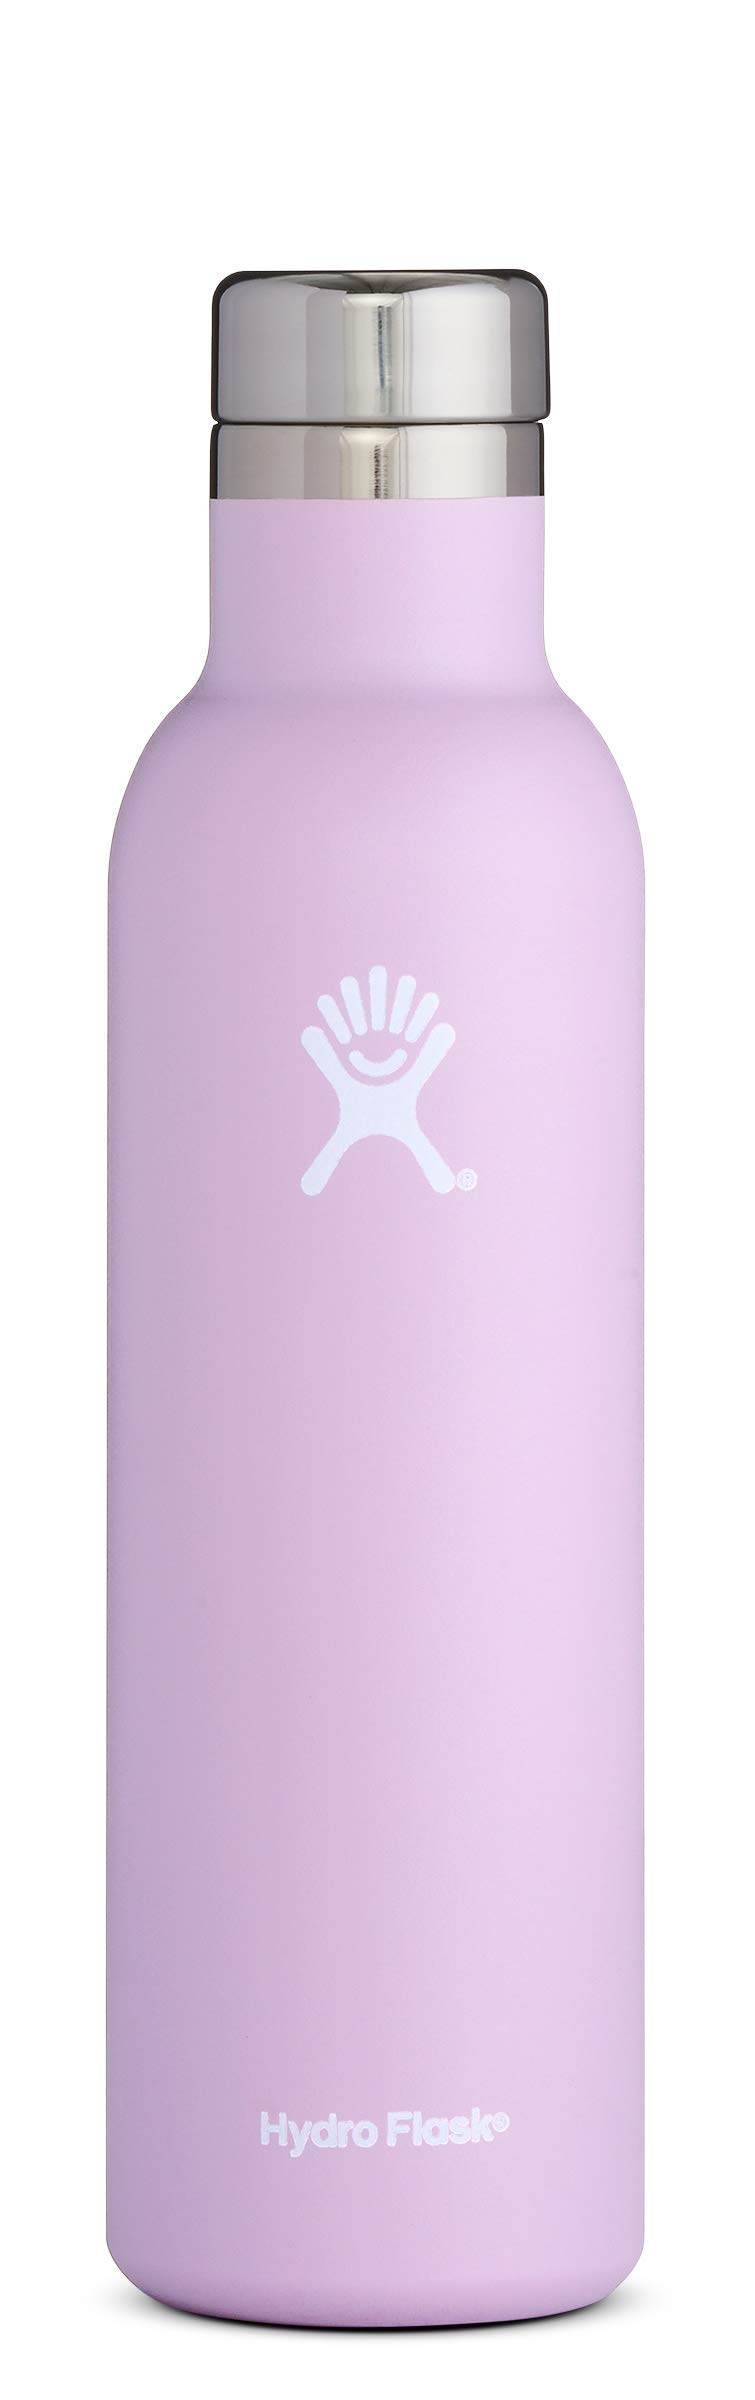 Hydro Flask 25 oz Double Wall Vacuum Insulated Stainless Steel Leak Proof Wine Bottle with BPA Free Cap, Lilac